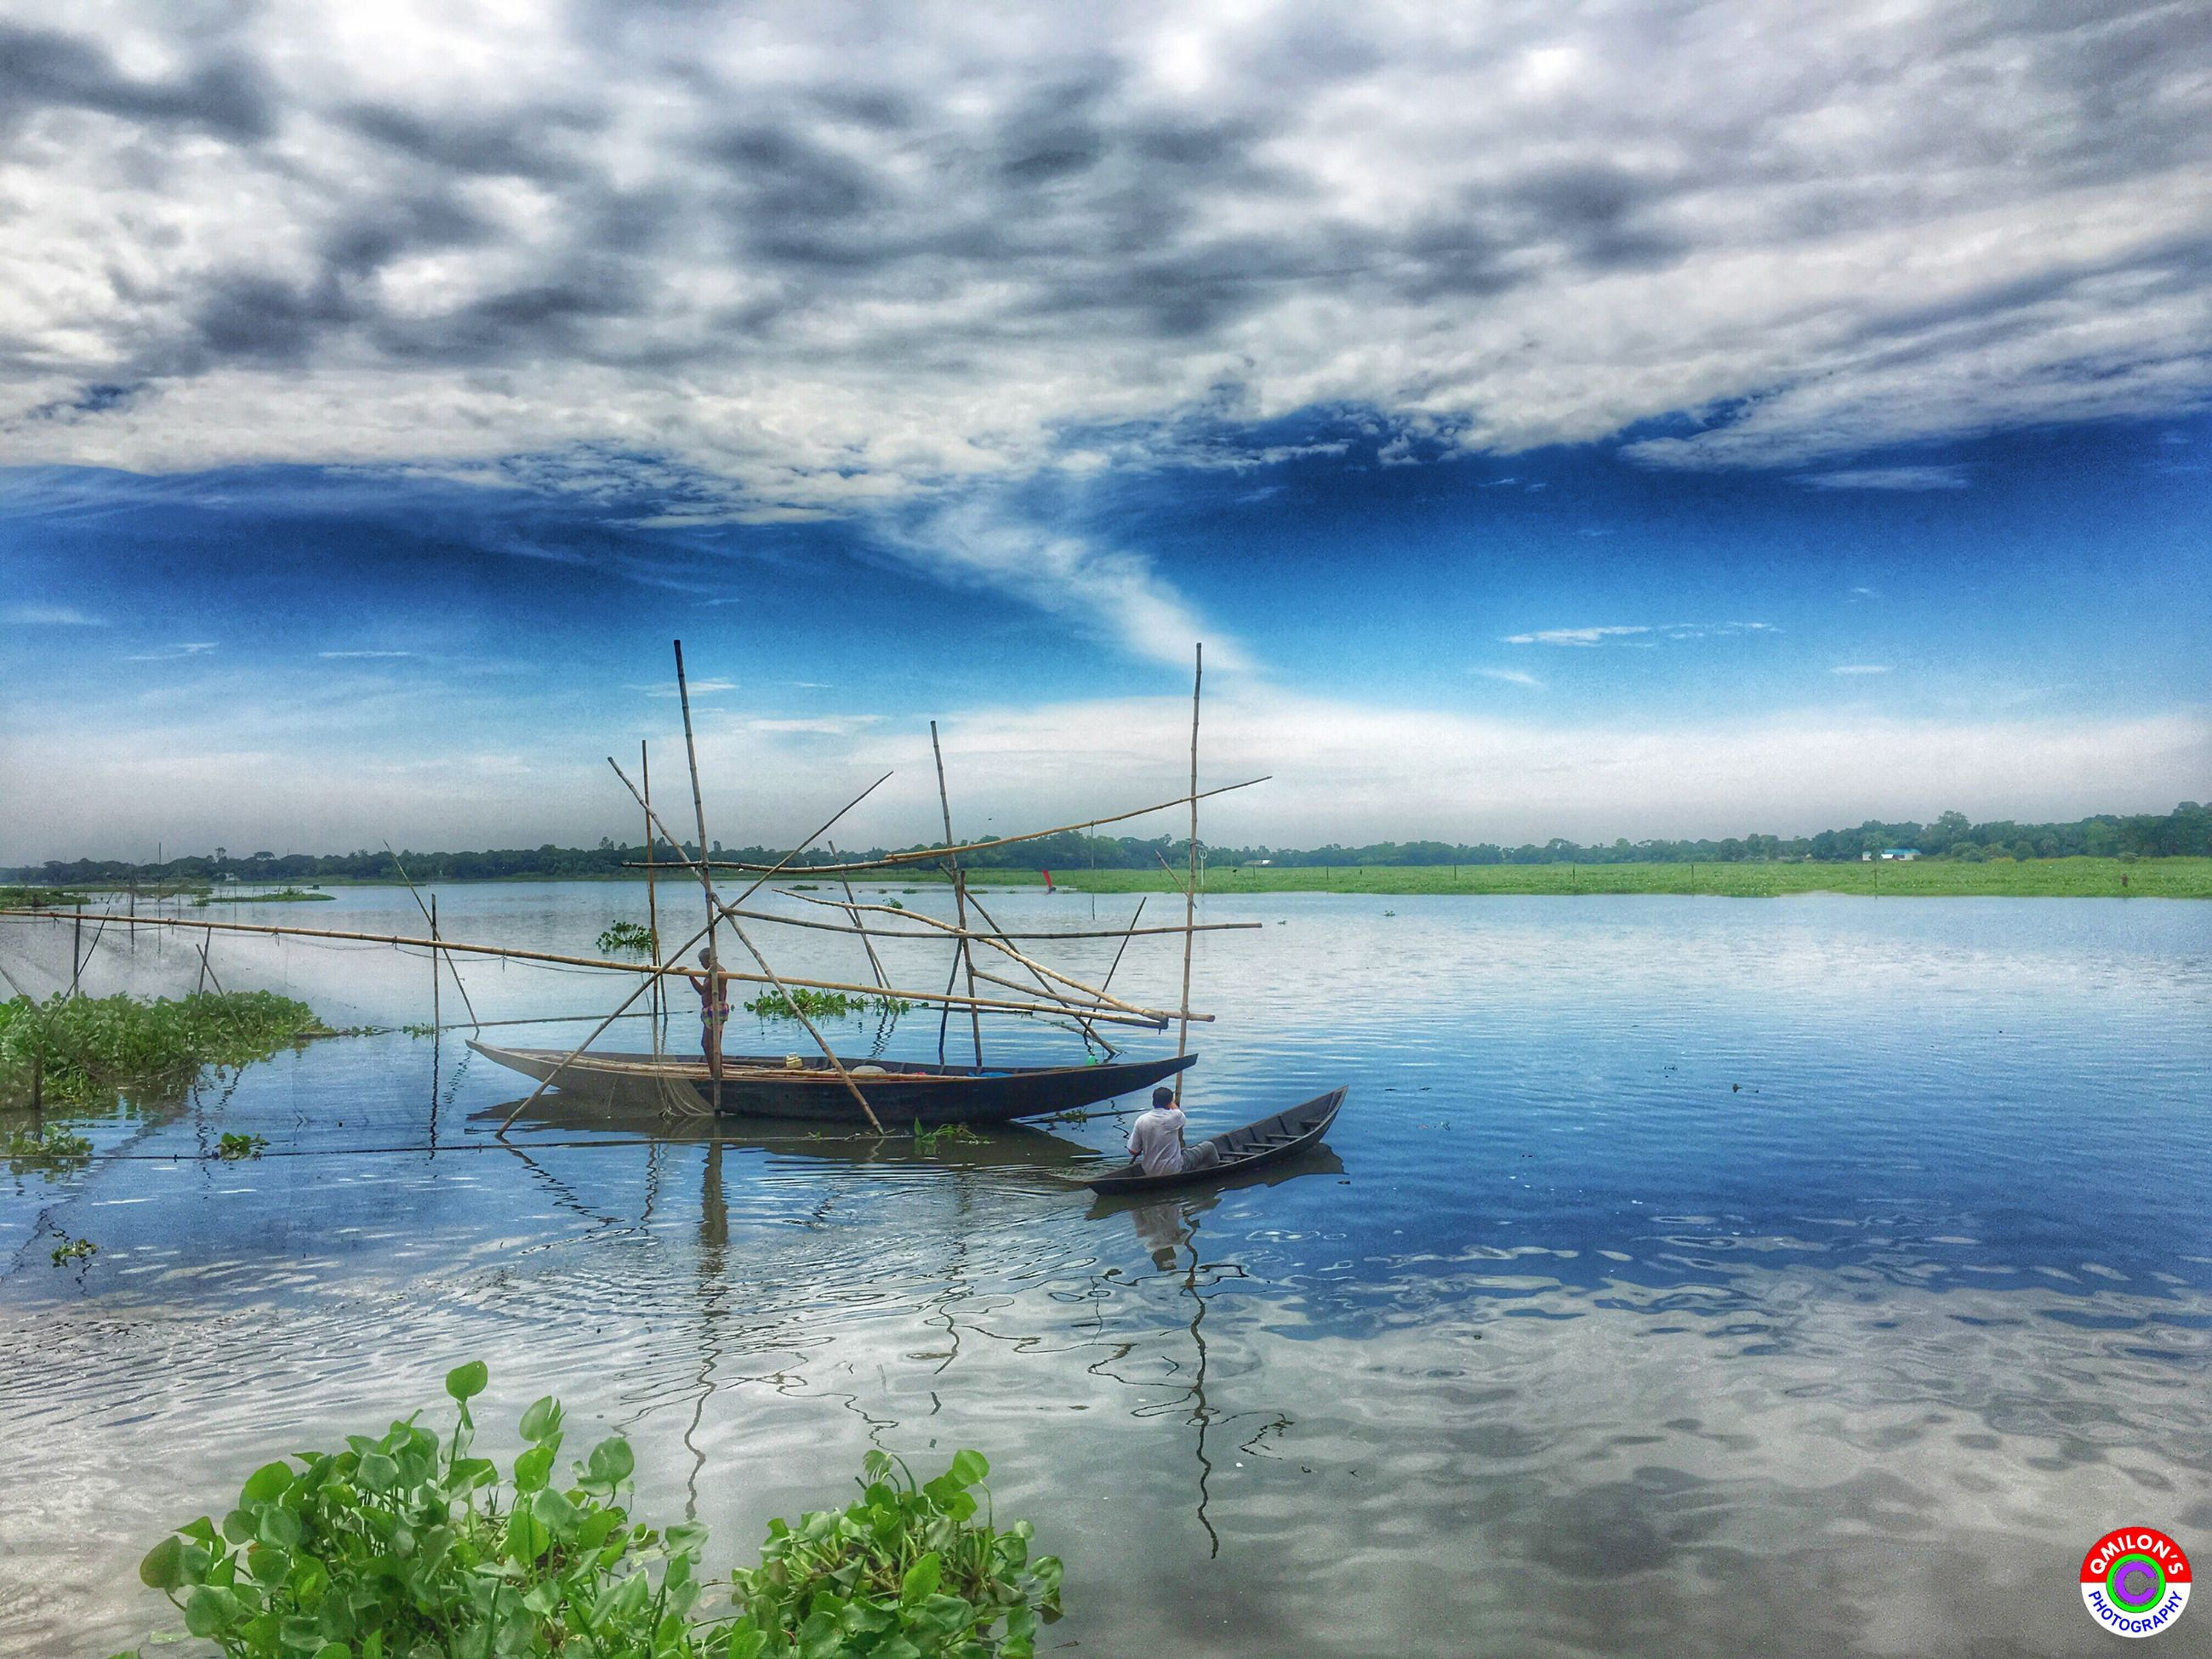 water, transportation, nautical vessel, sky, tranquility, tranquil scene, scenics, cloud - sky, mode of transport, lake, cloud, calm, nature, blue, sea, plant, beauty in nature, day, cloudy, cloudscape, non-urban scene, seascape, outdoors, no people, dramatic sky, ocean, cumulus cloud, tourism